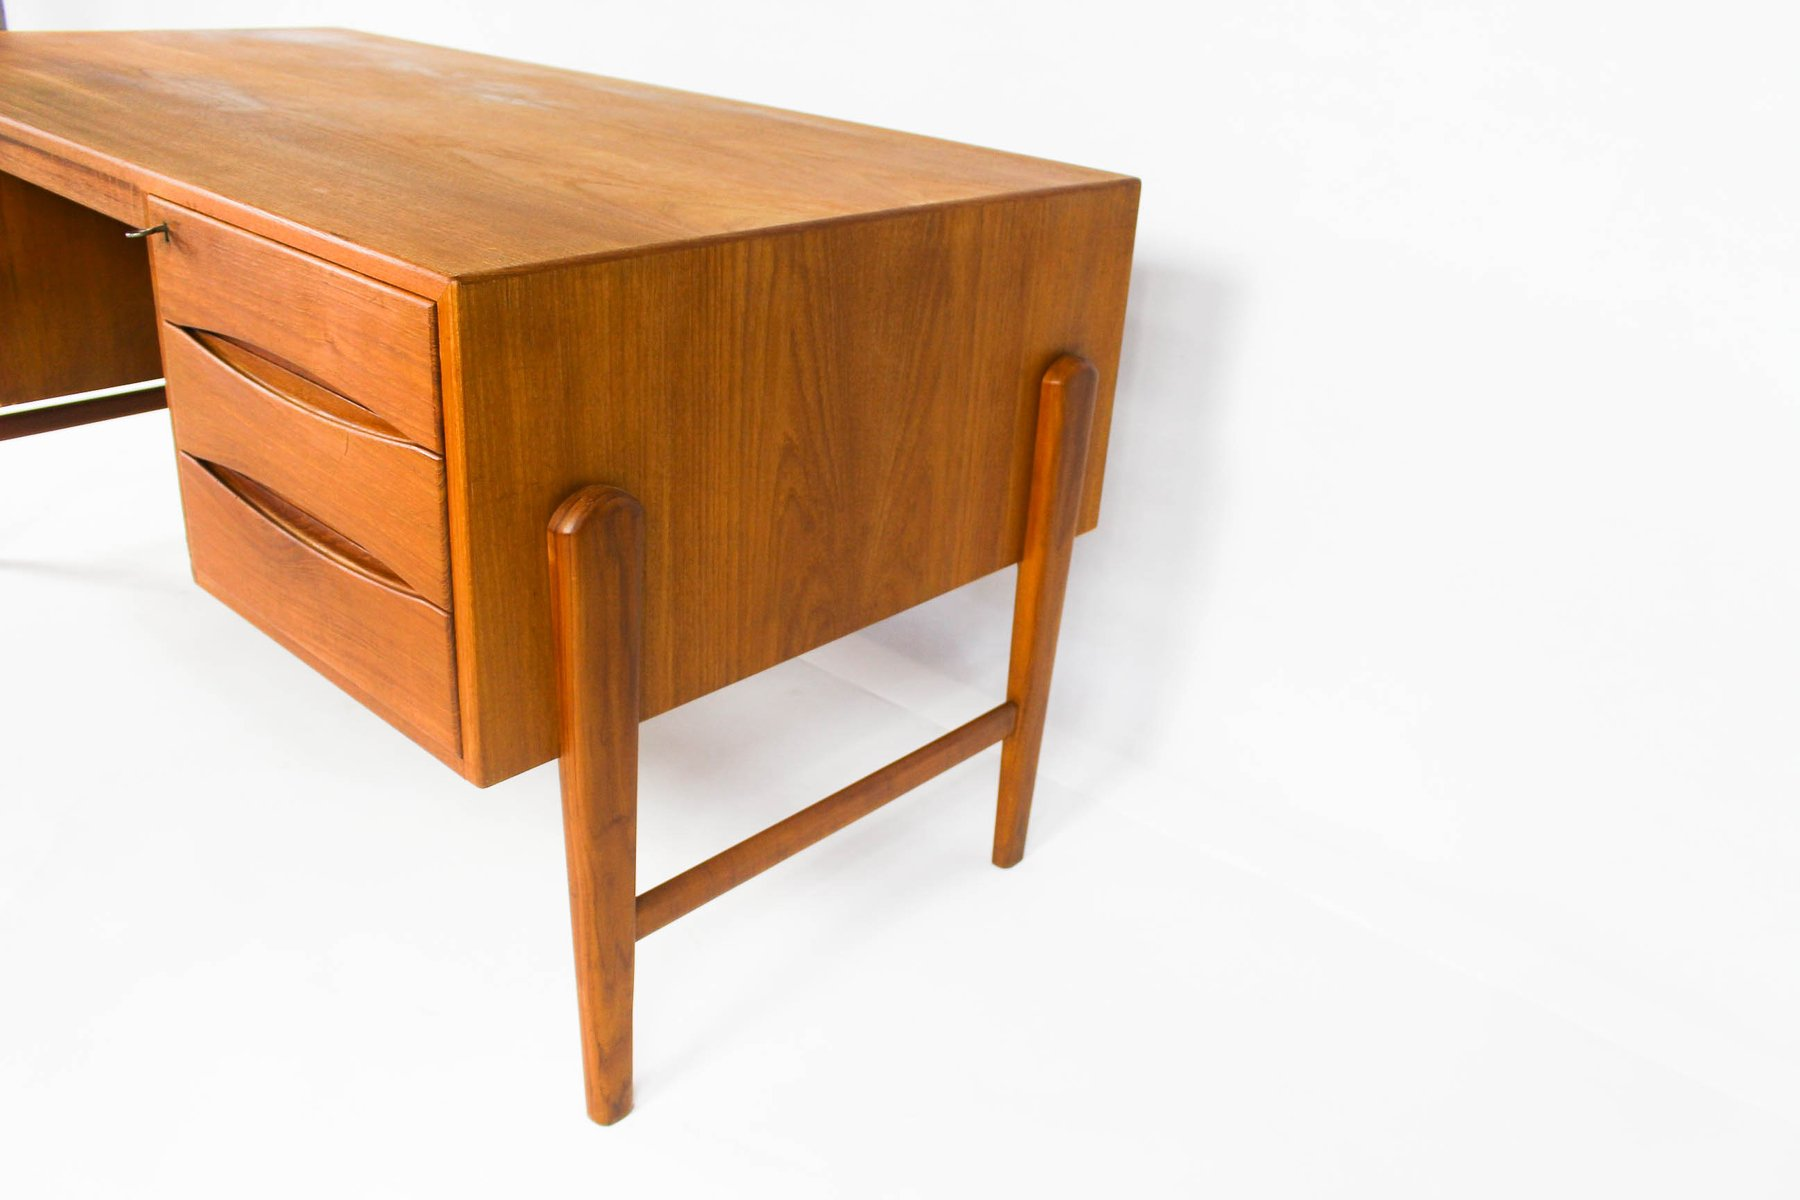 Modern danish teak floating top desk for sale at pamono for Floating desk for sale